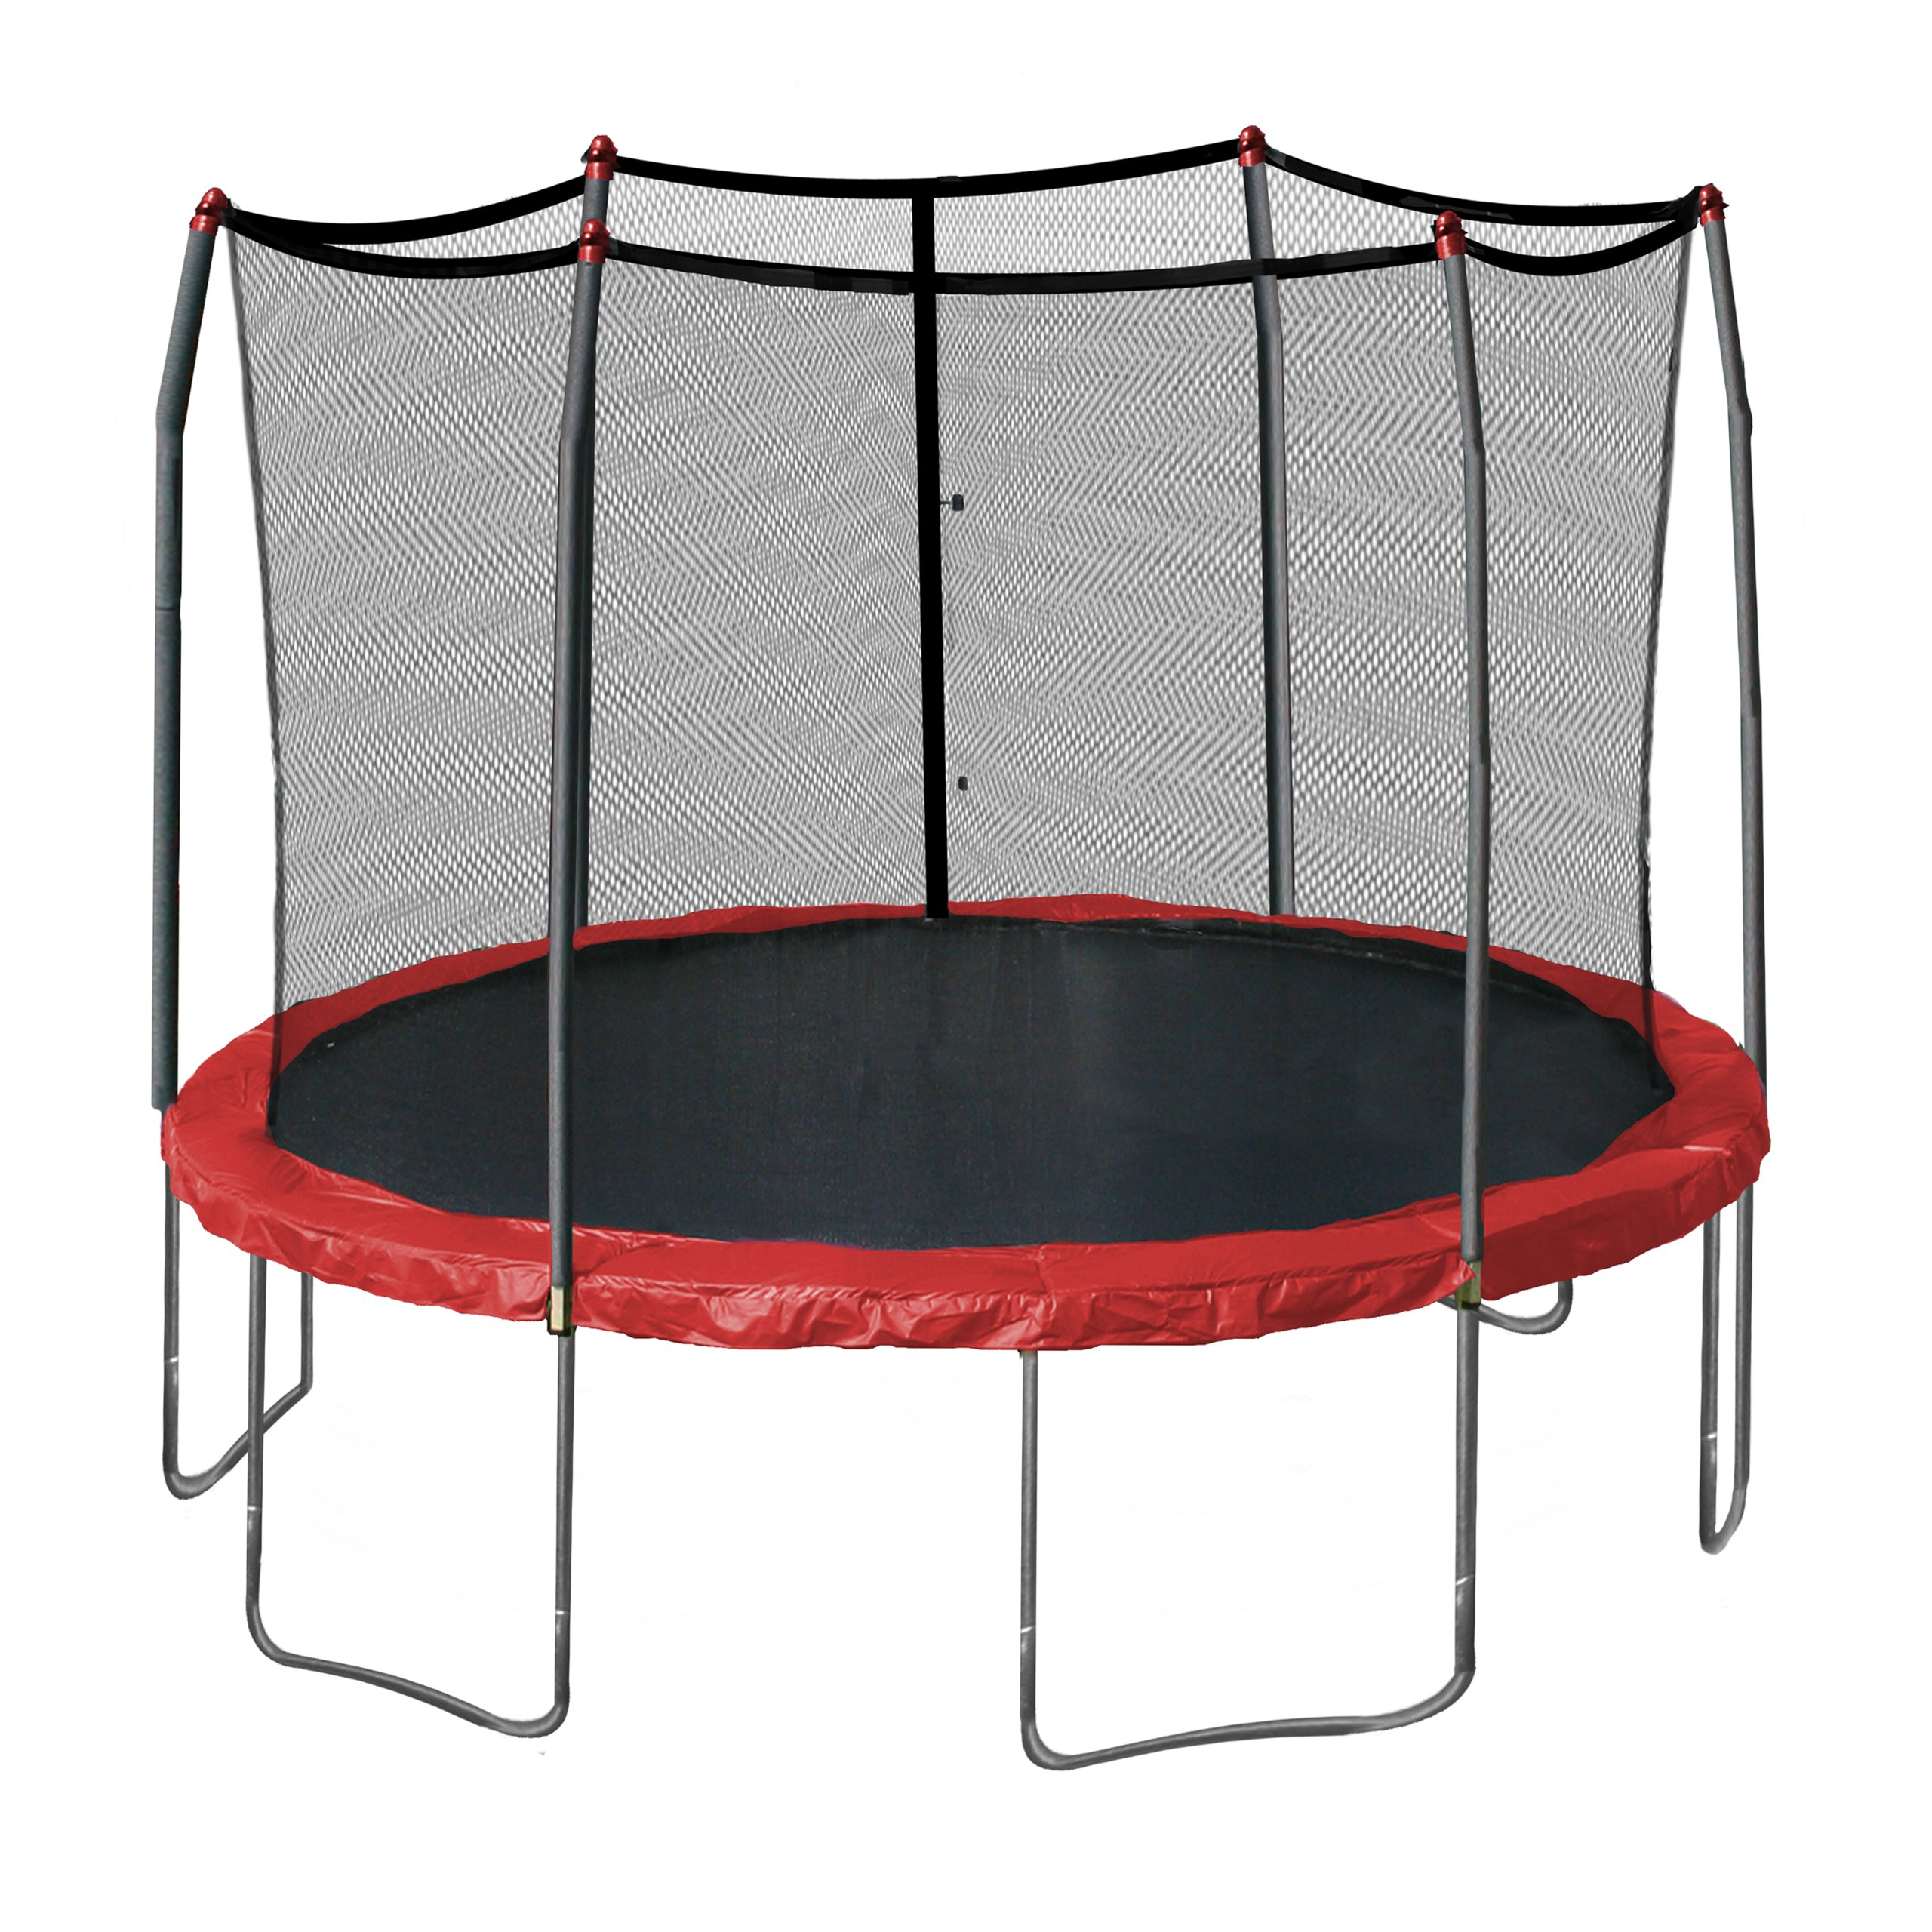 Skywalker 12-Feet Round Trampoline with Enclosure, Red